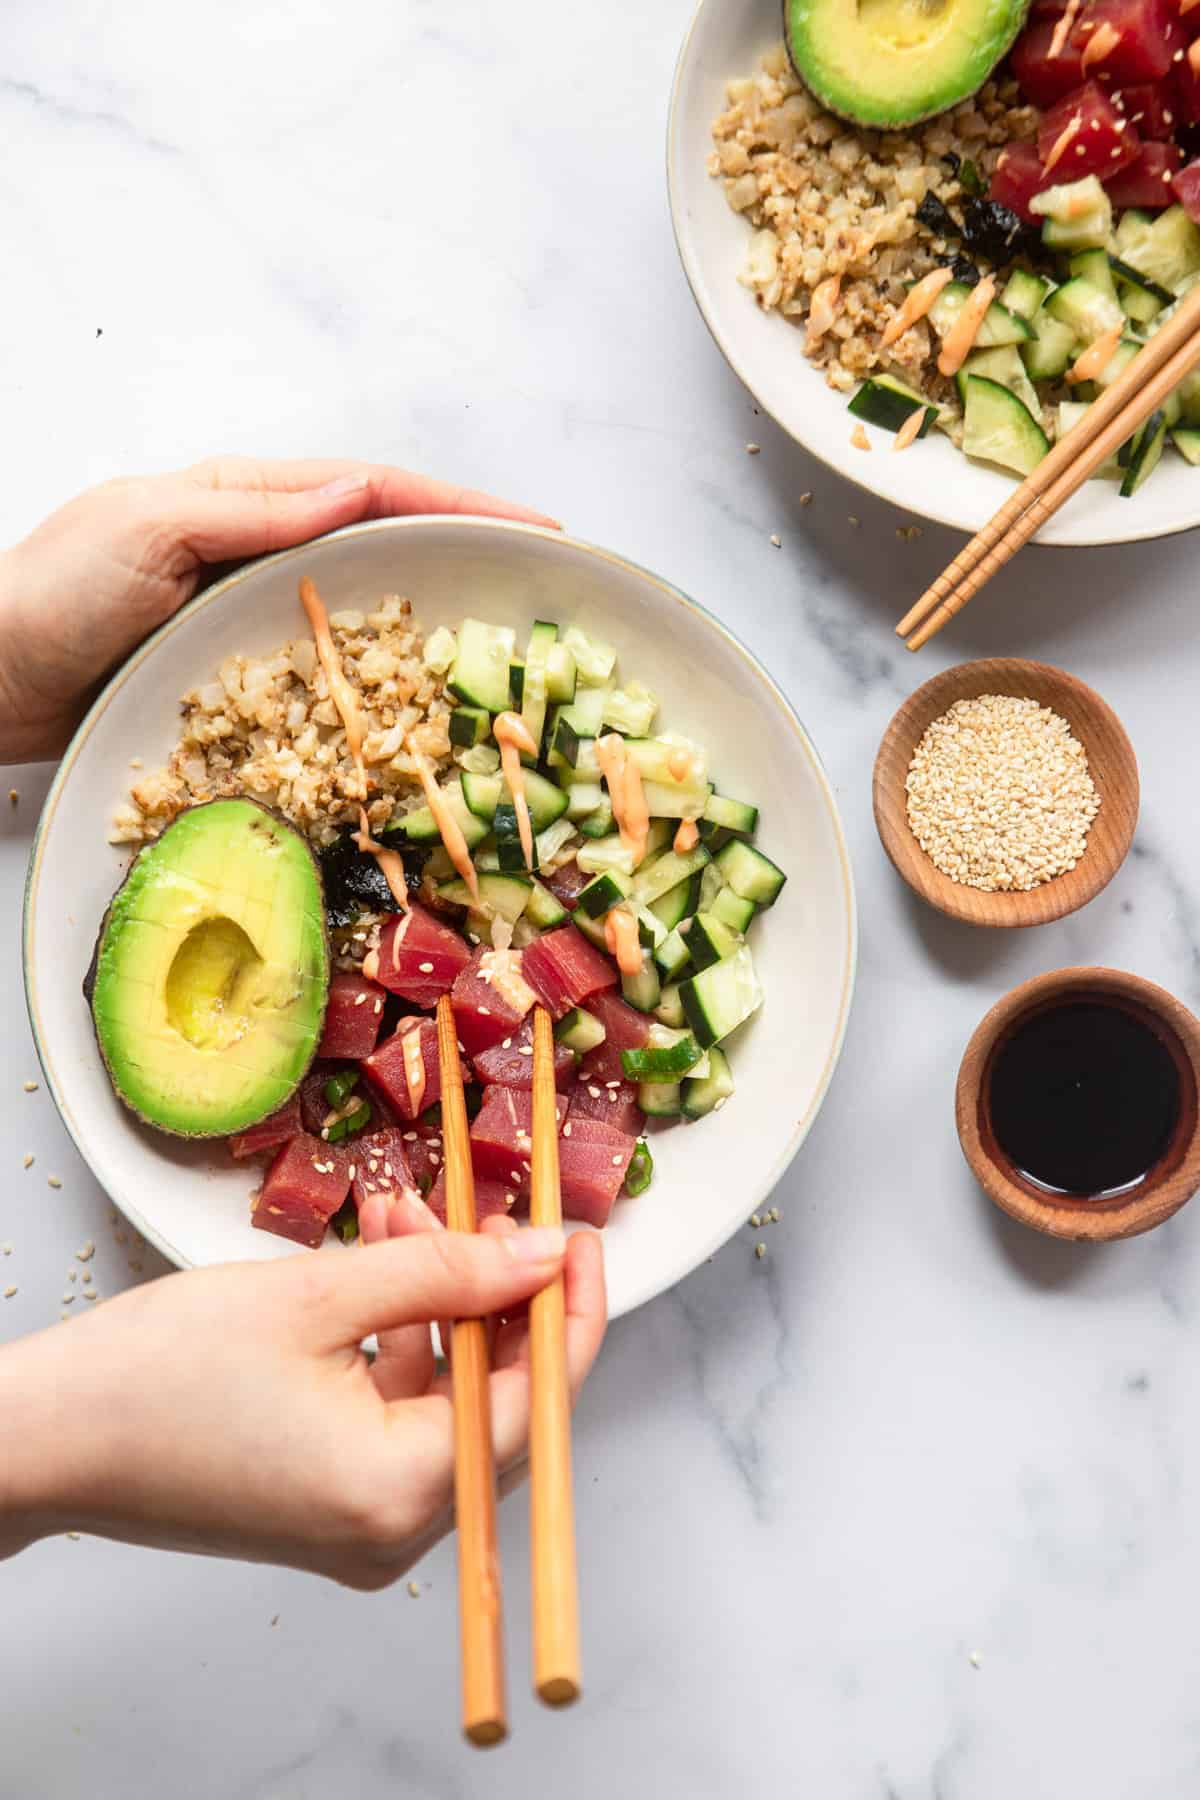 image of low carb poke bowl on a table being eaten with chopsticks